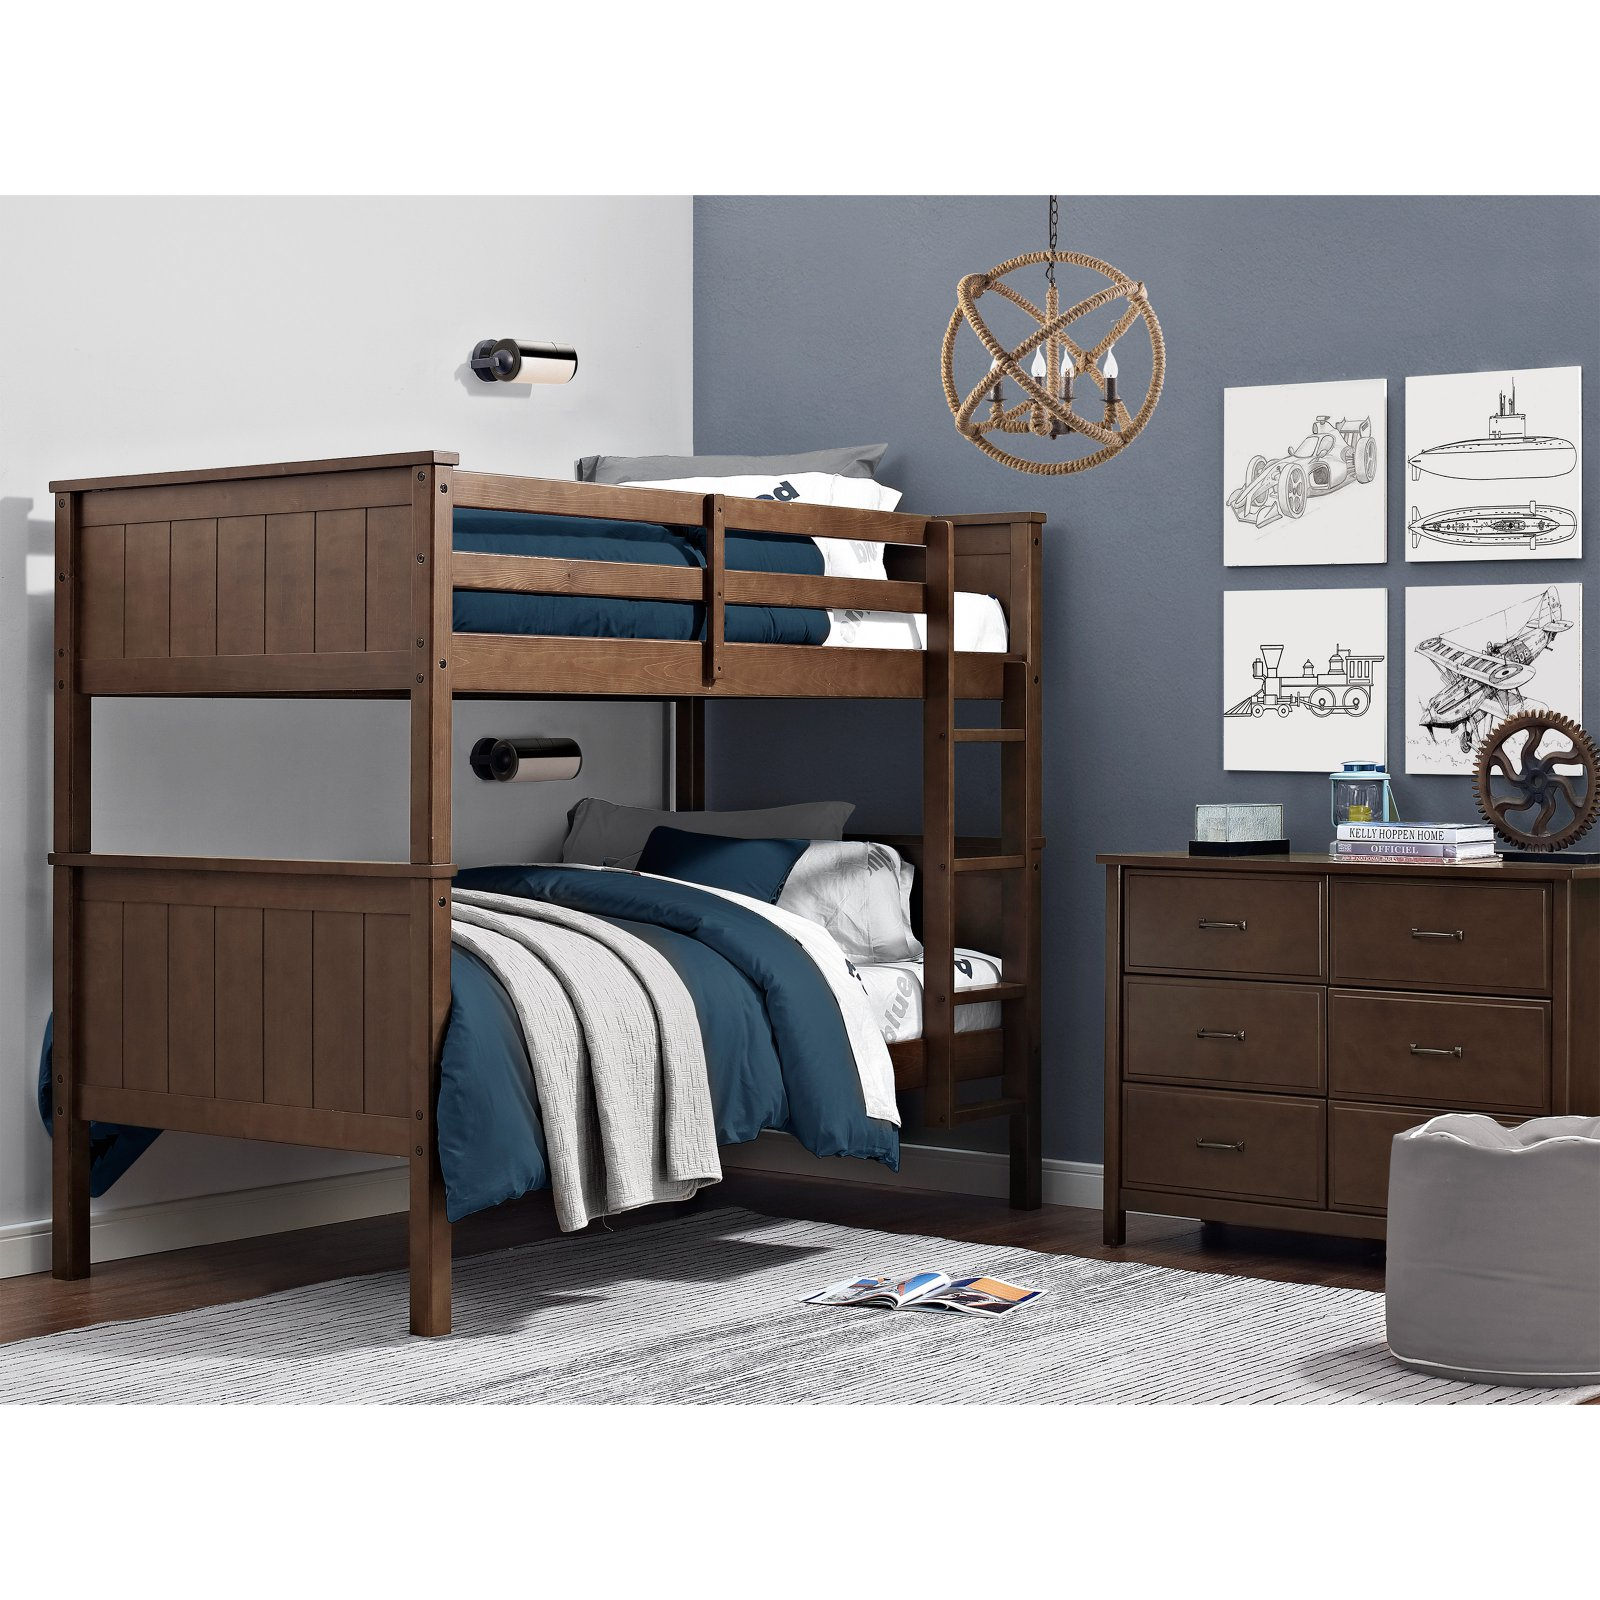 Dorel Living Maxton Twin over Twin Bunk Bed - Mocha